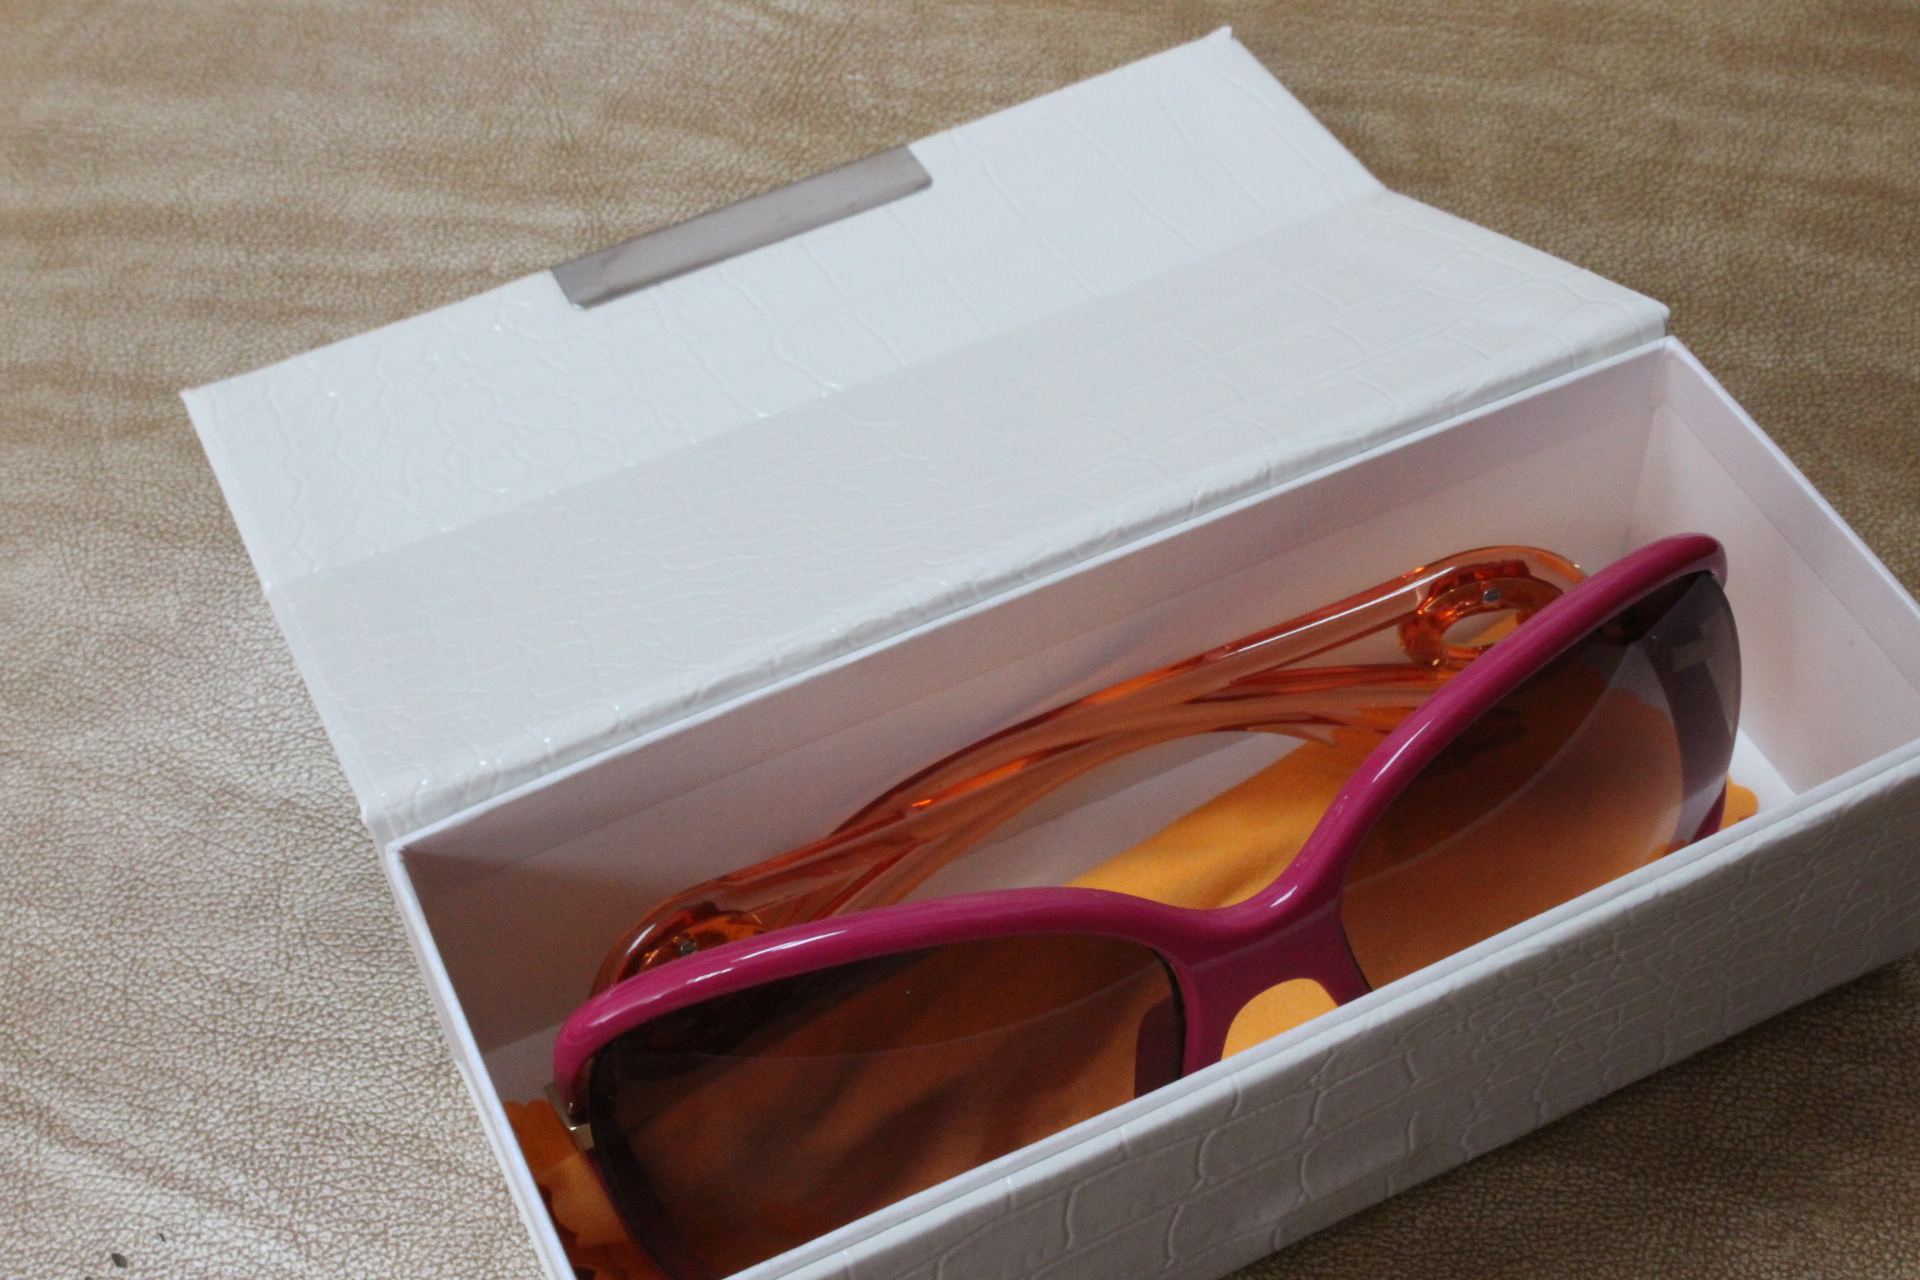 eyeglasses case(HX509)